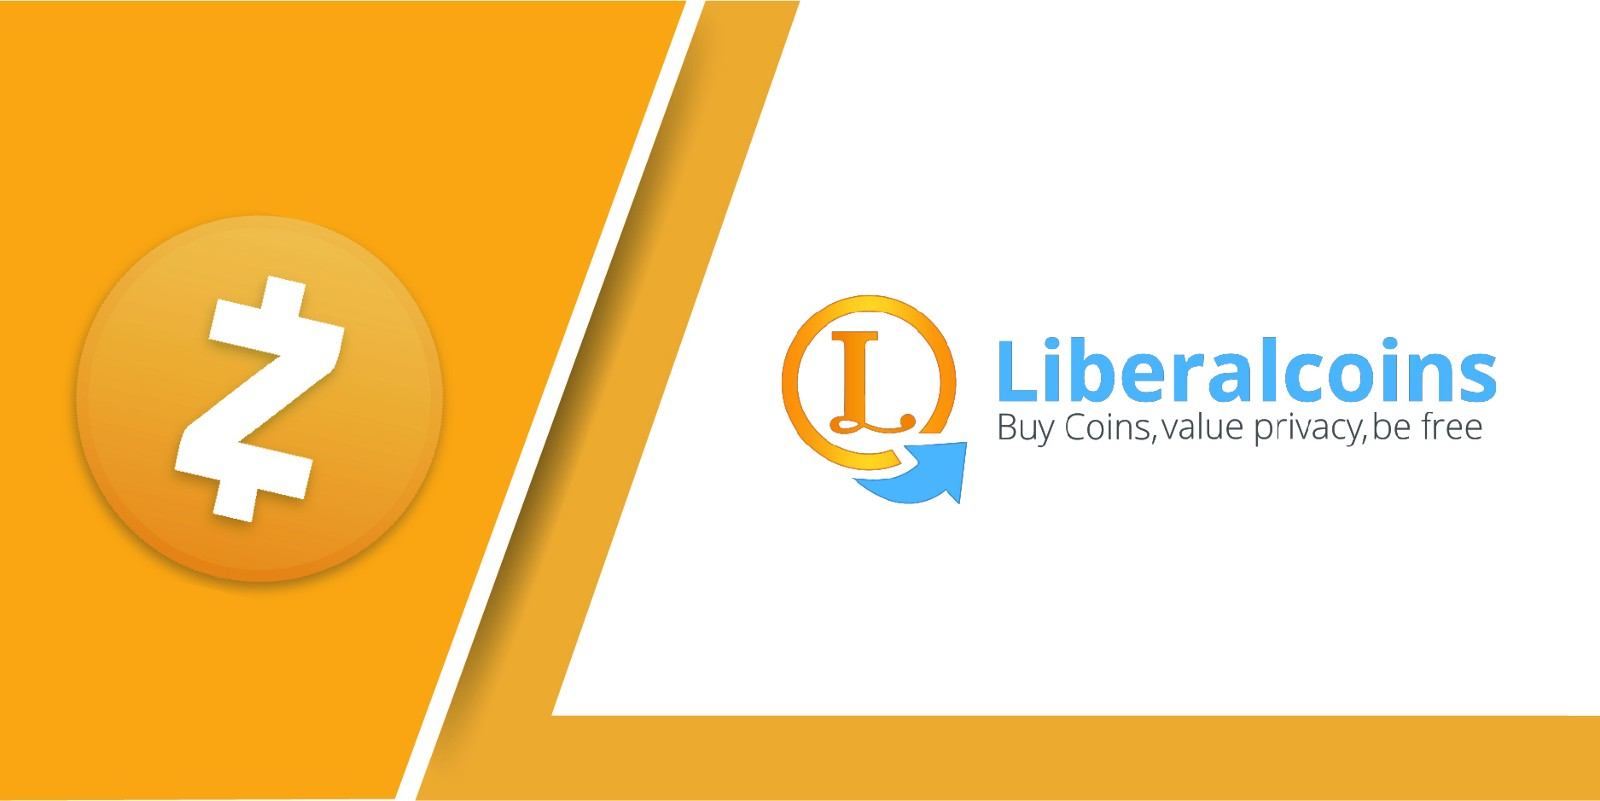 Liberalcoins Announces Integration of Privacy Coin Zcash